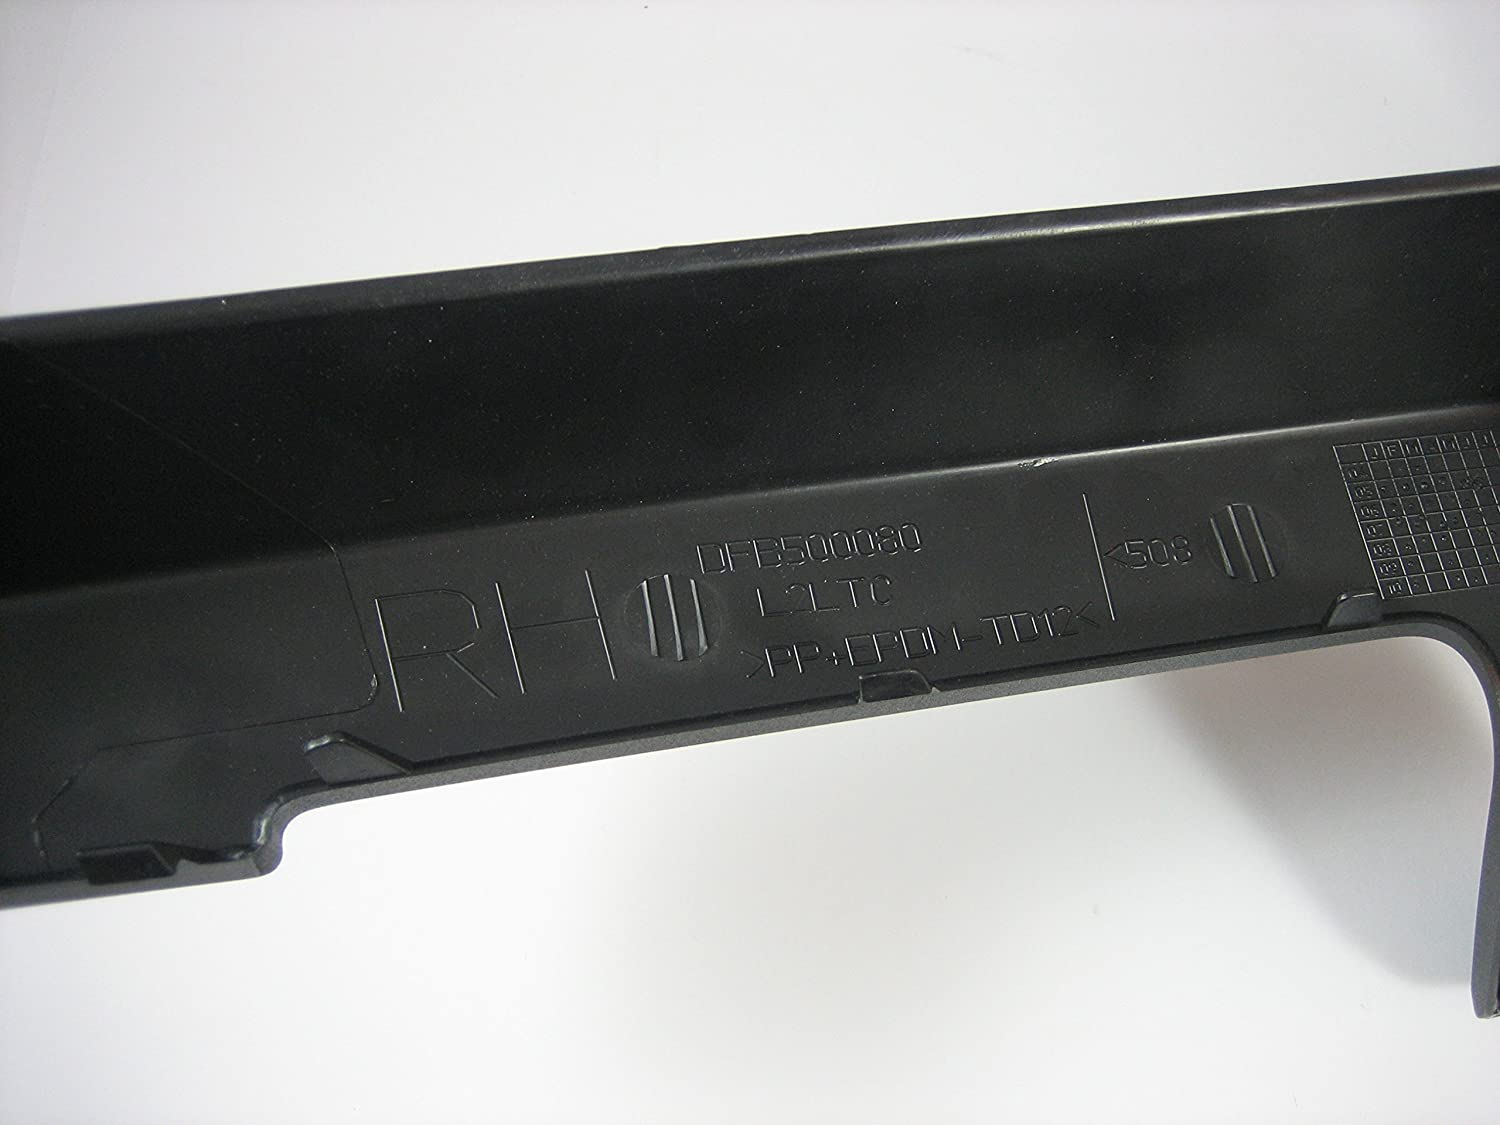 Genuine 2006-2009 Range Rover Passenger Side Right Front Bumper Valence